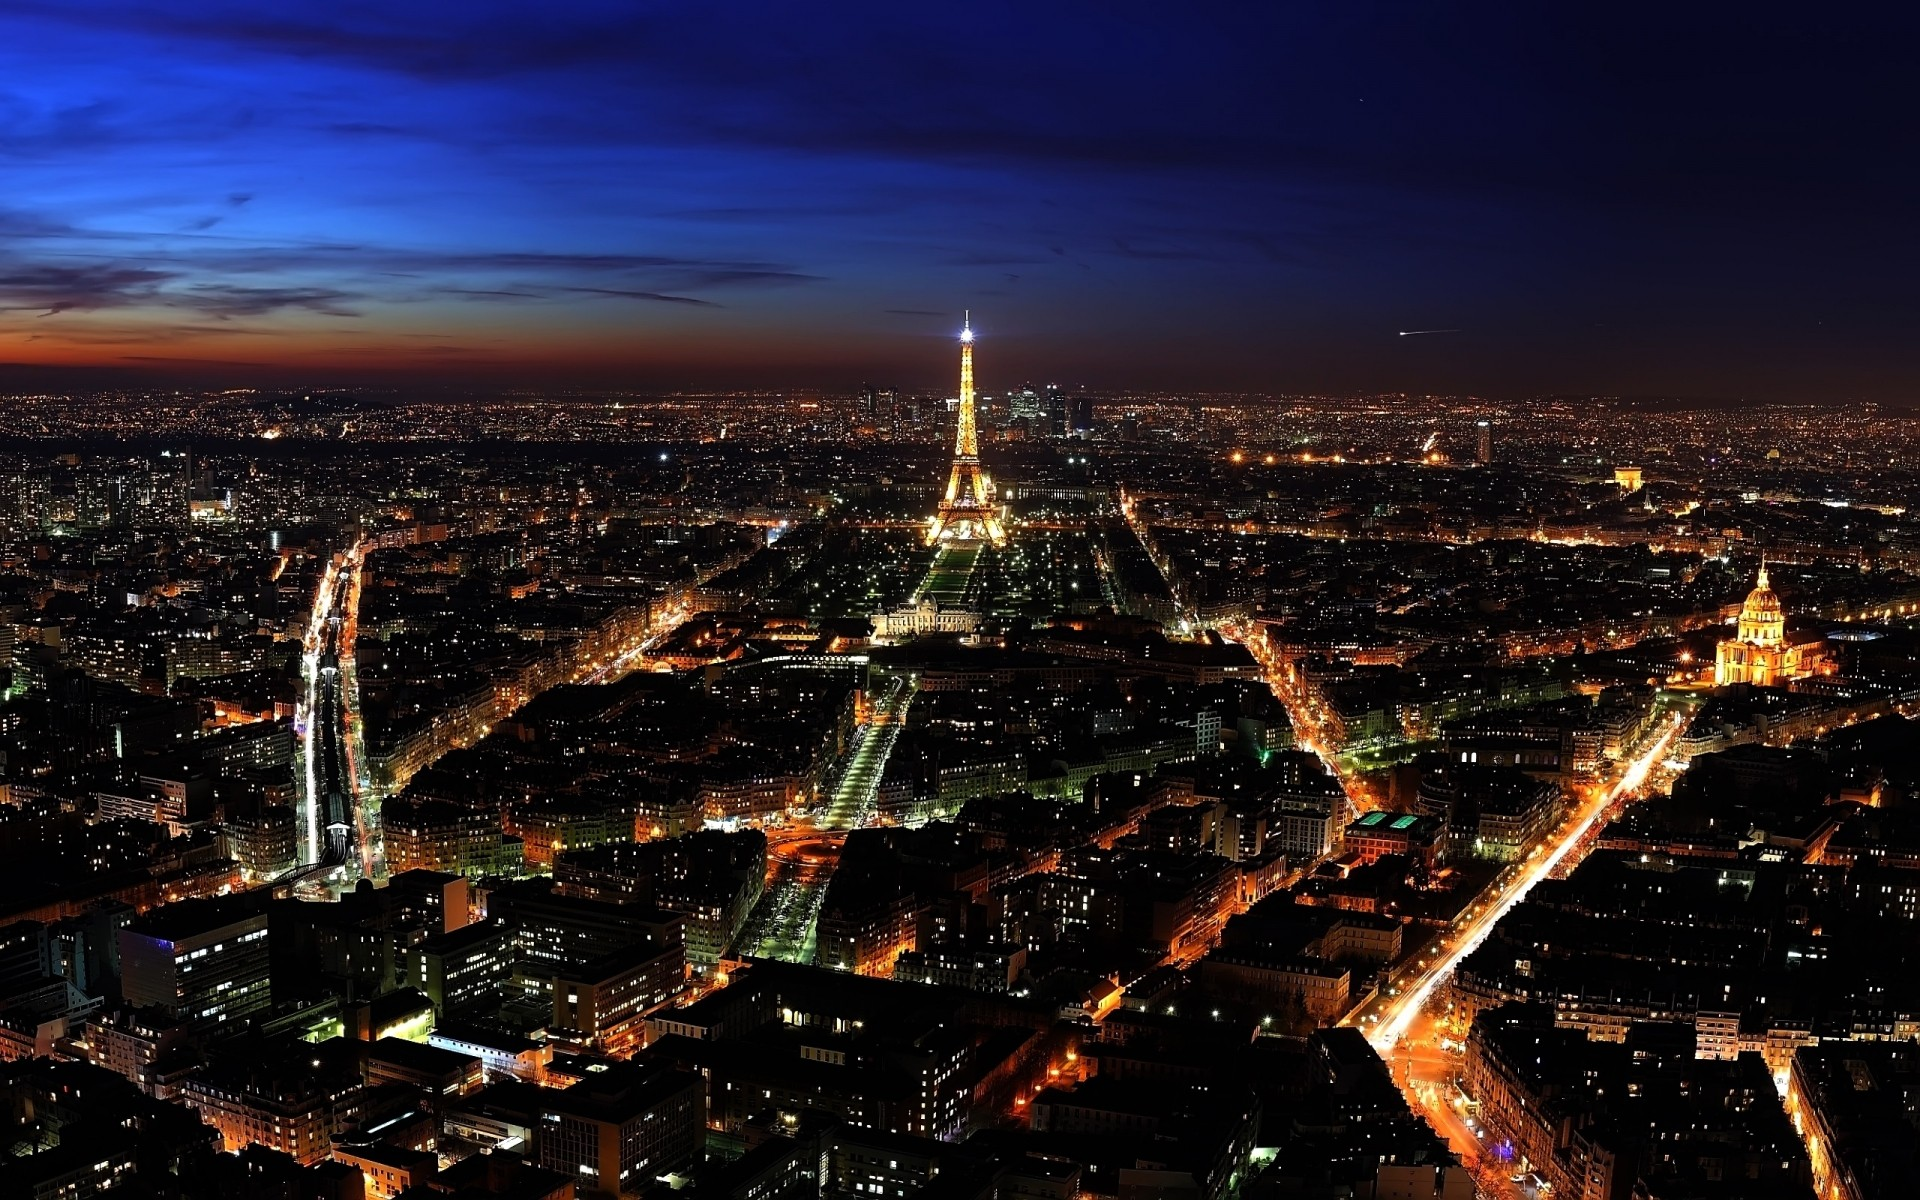 france city cityscape skyline architecture travel sunset urban sky panorama building aerial evening dusk landscape panoramic